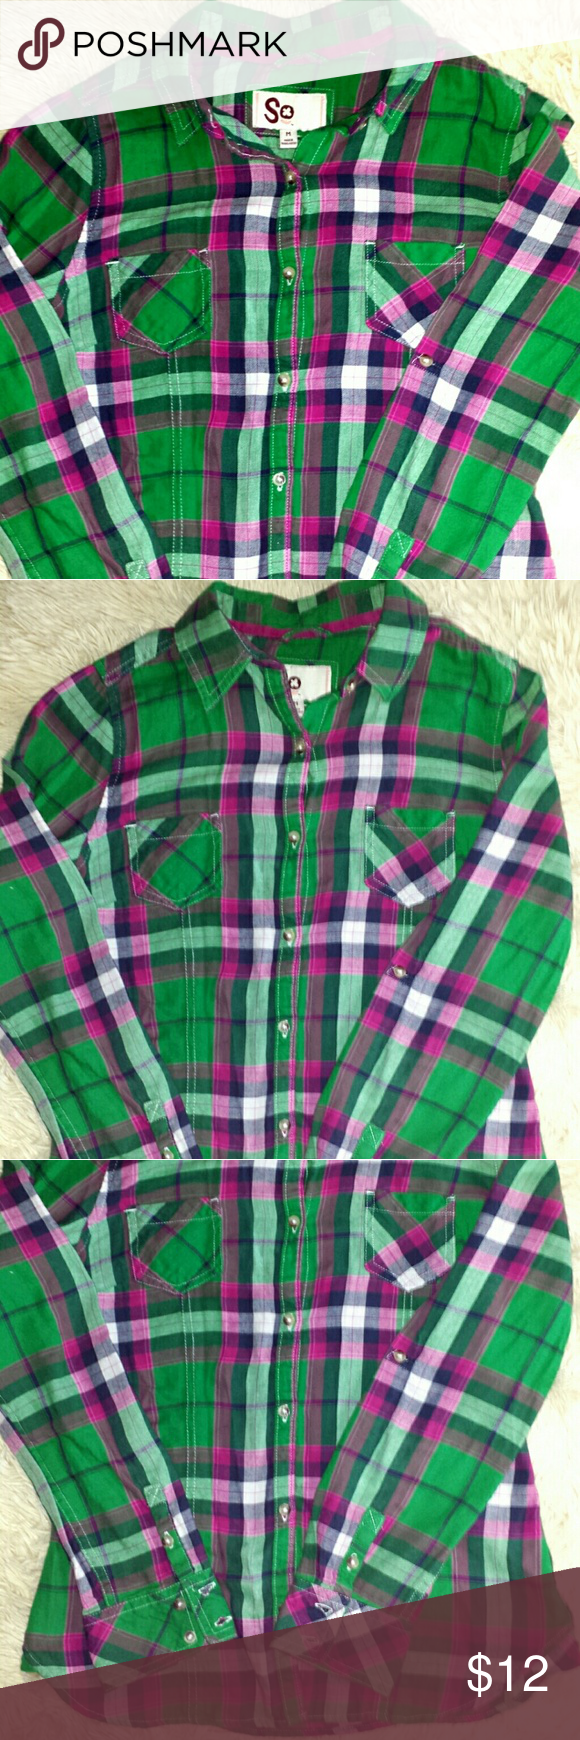 Flannel shirts at kohl's  Flanel plad long sleeve button down shirt Flanel plad long sleeve